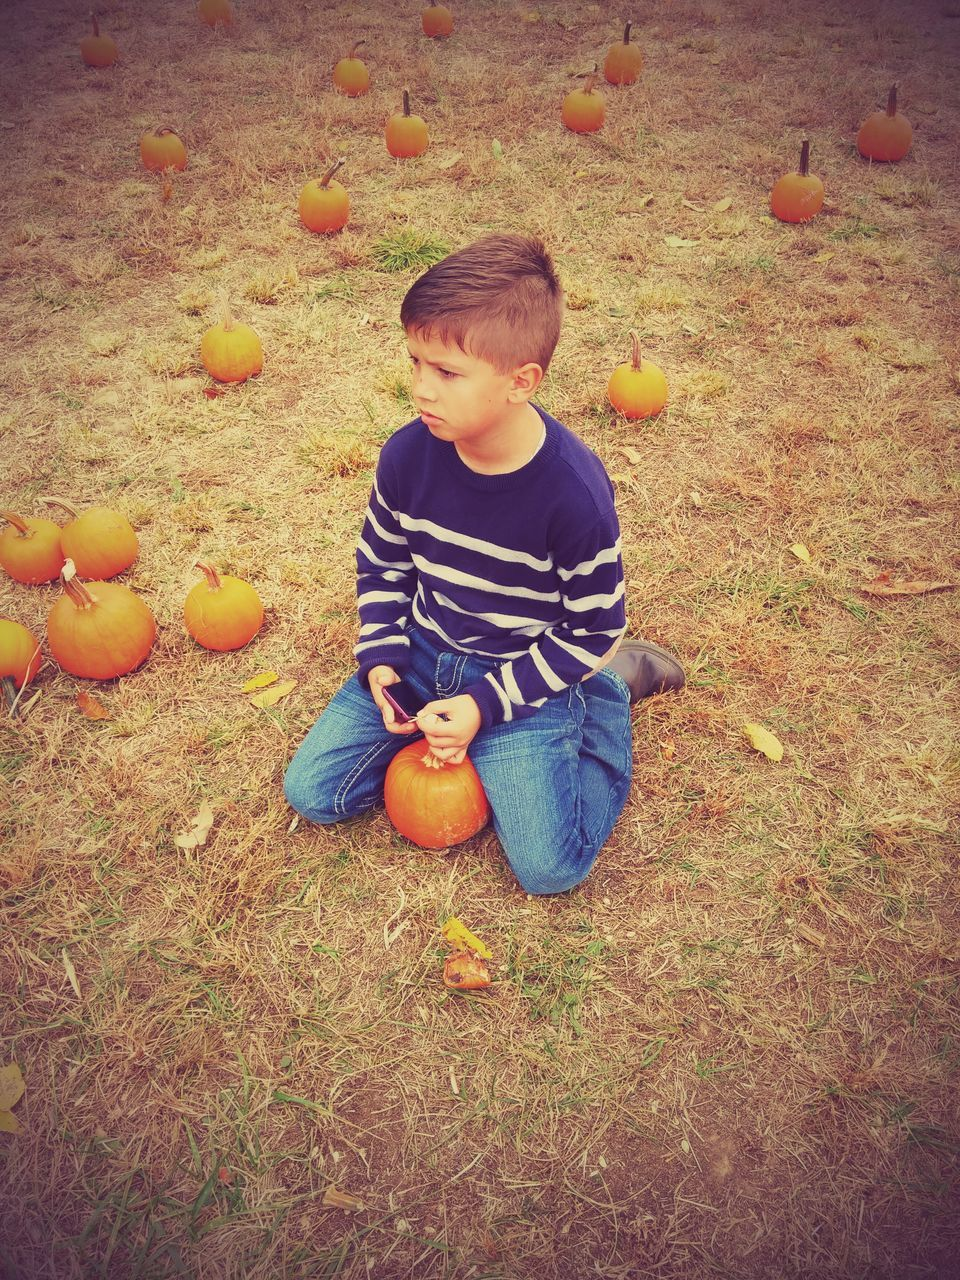 pumpkin, field, boys, childhood, one person, full length, real people, casual clothing, grass, day, food, autumn, outdoors, sitting, nature, halloween, people